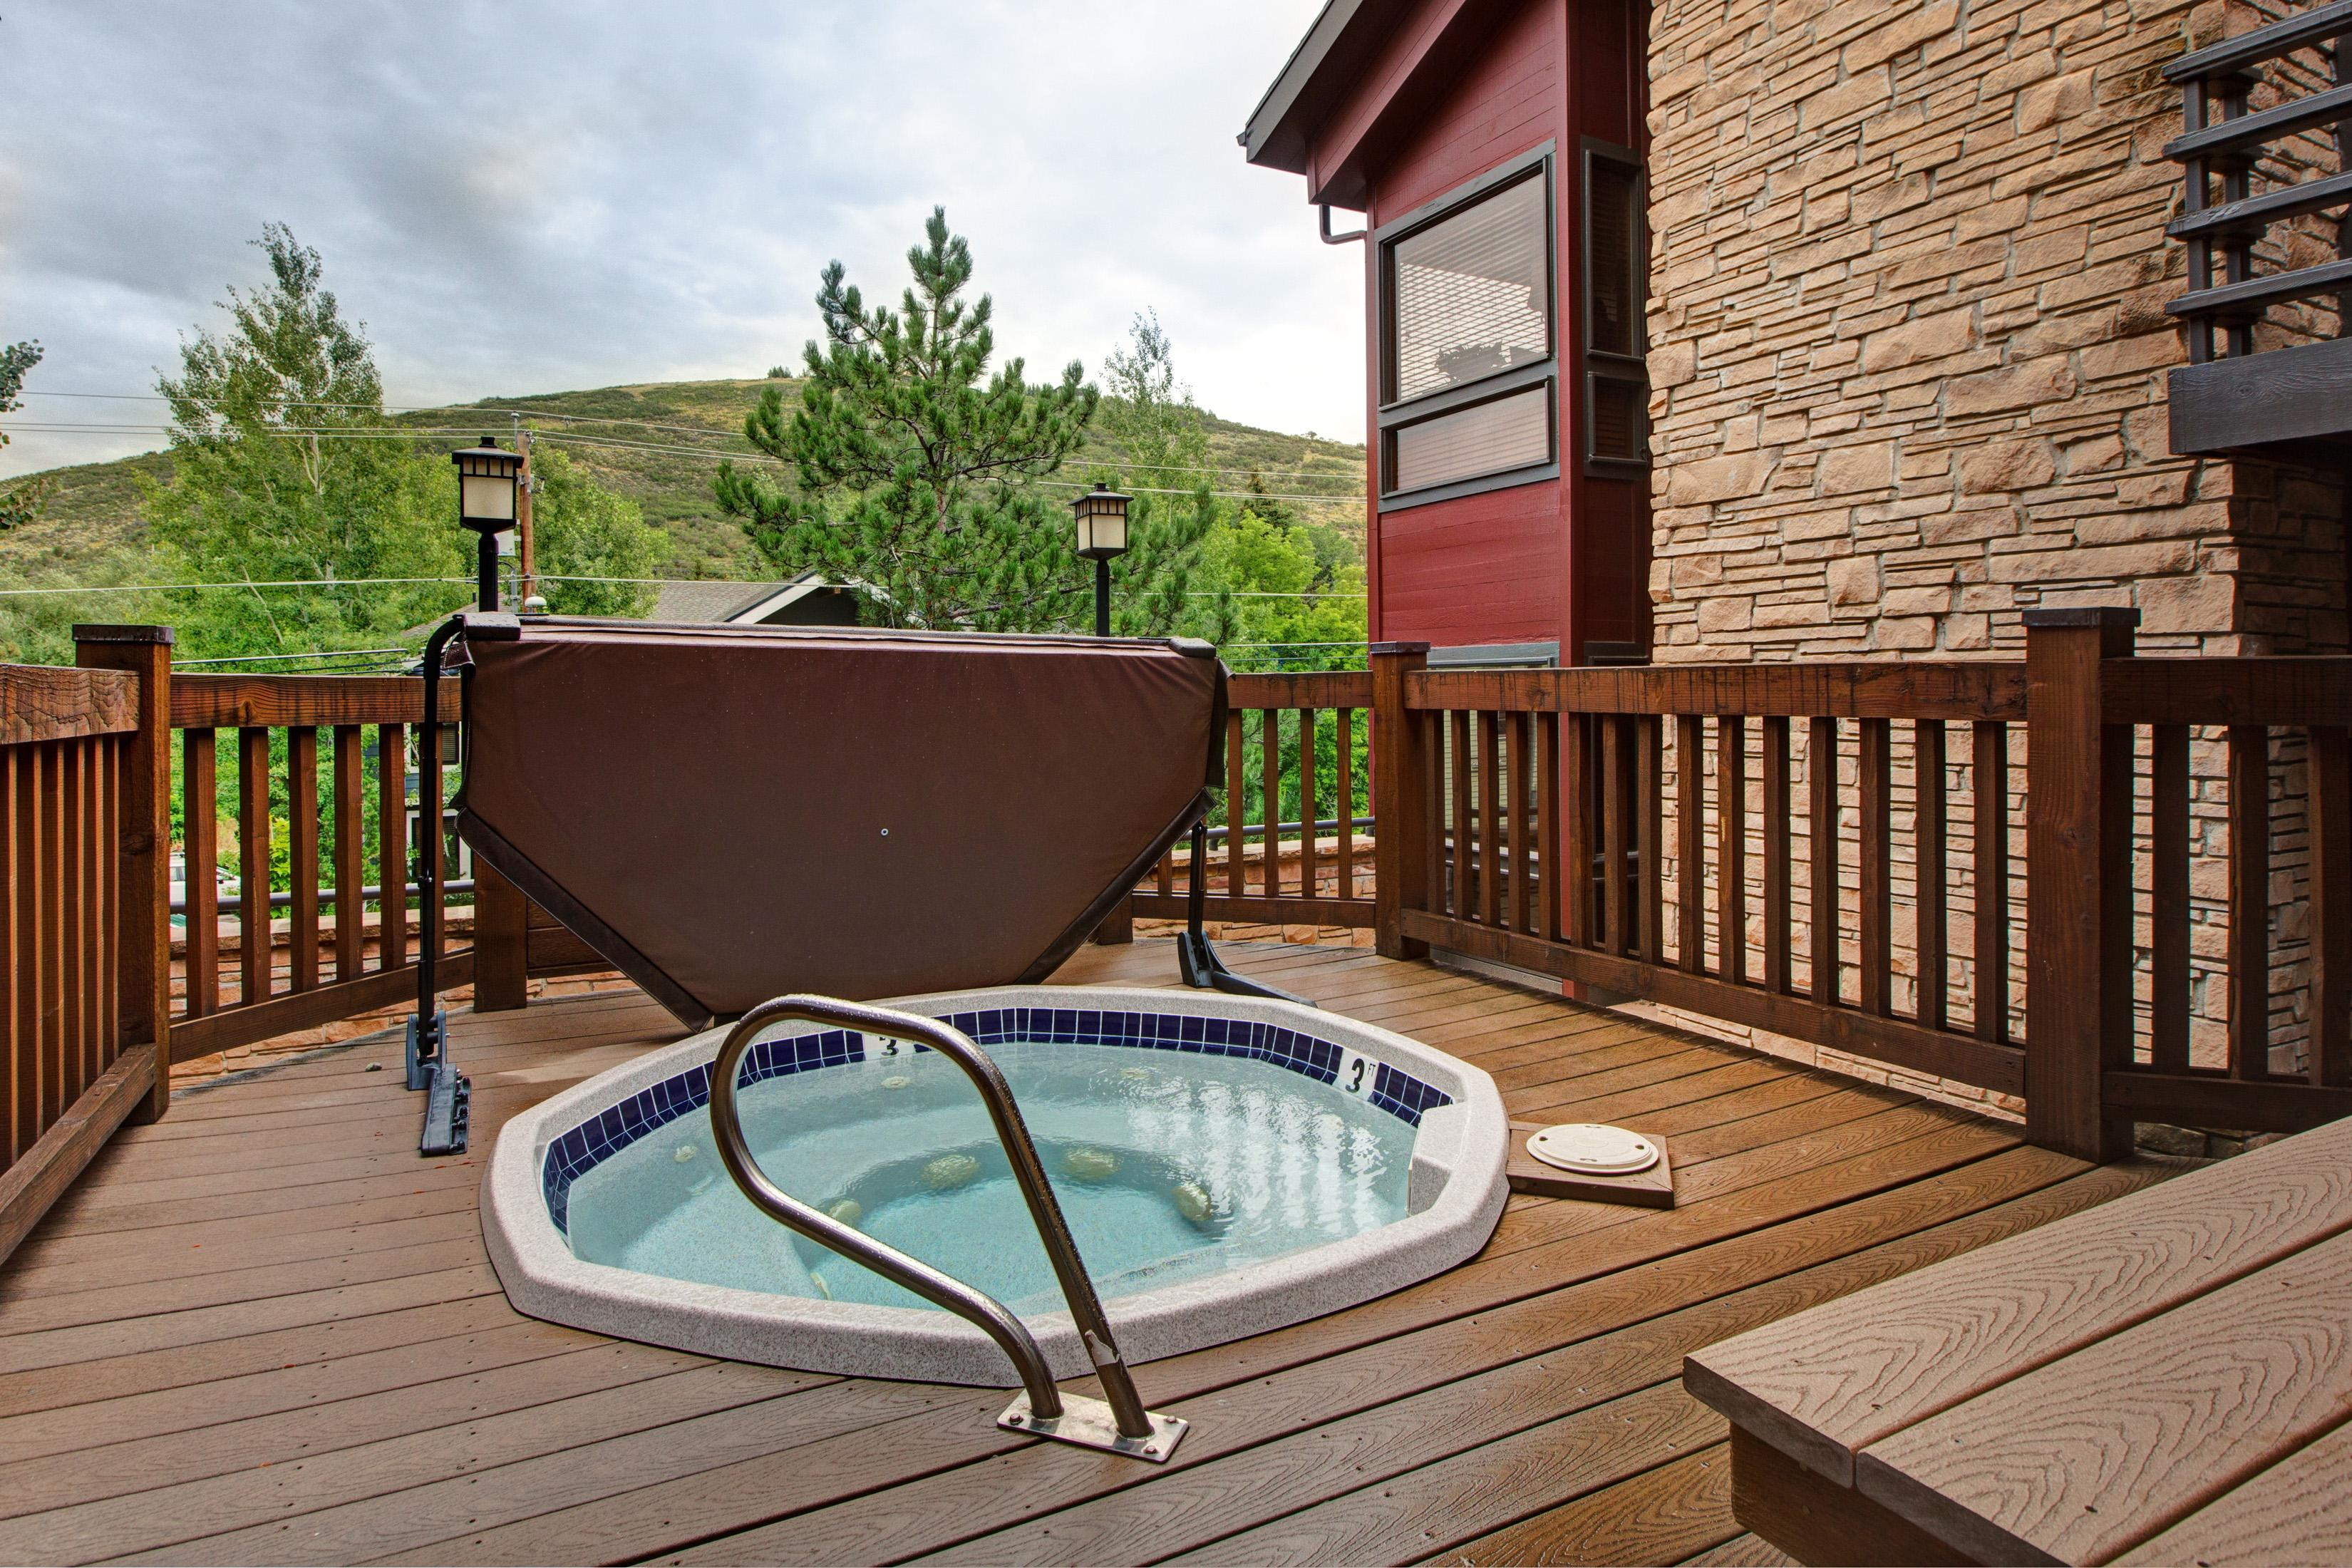 Take in gorgeous tree-lined views while you soak in one of the 2 hot tubs on-site.